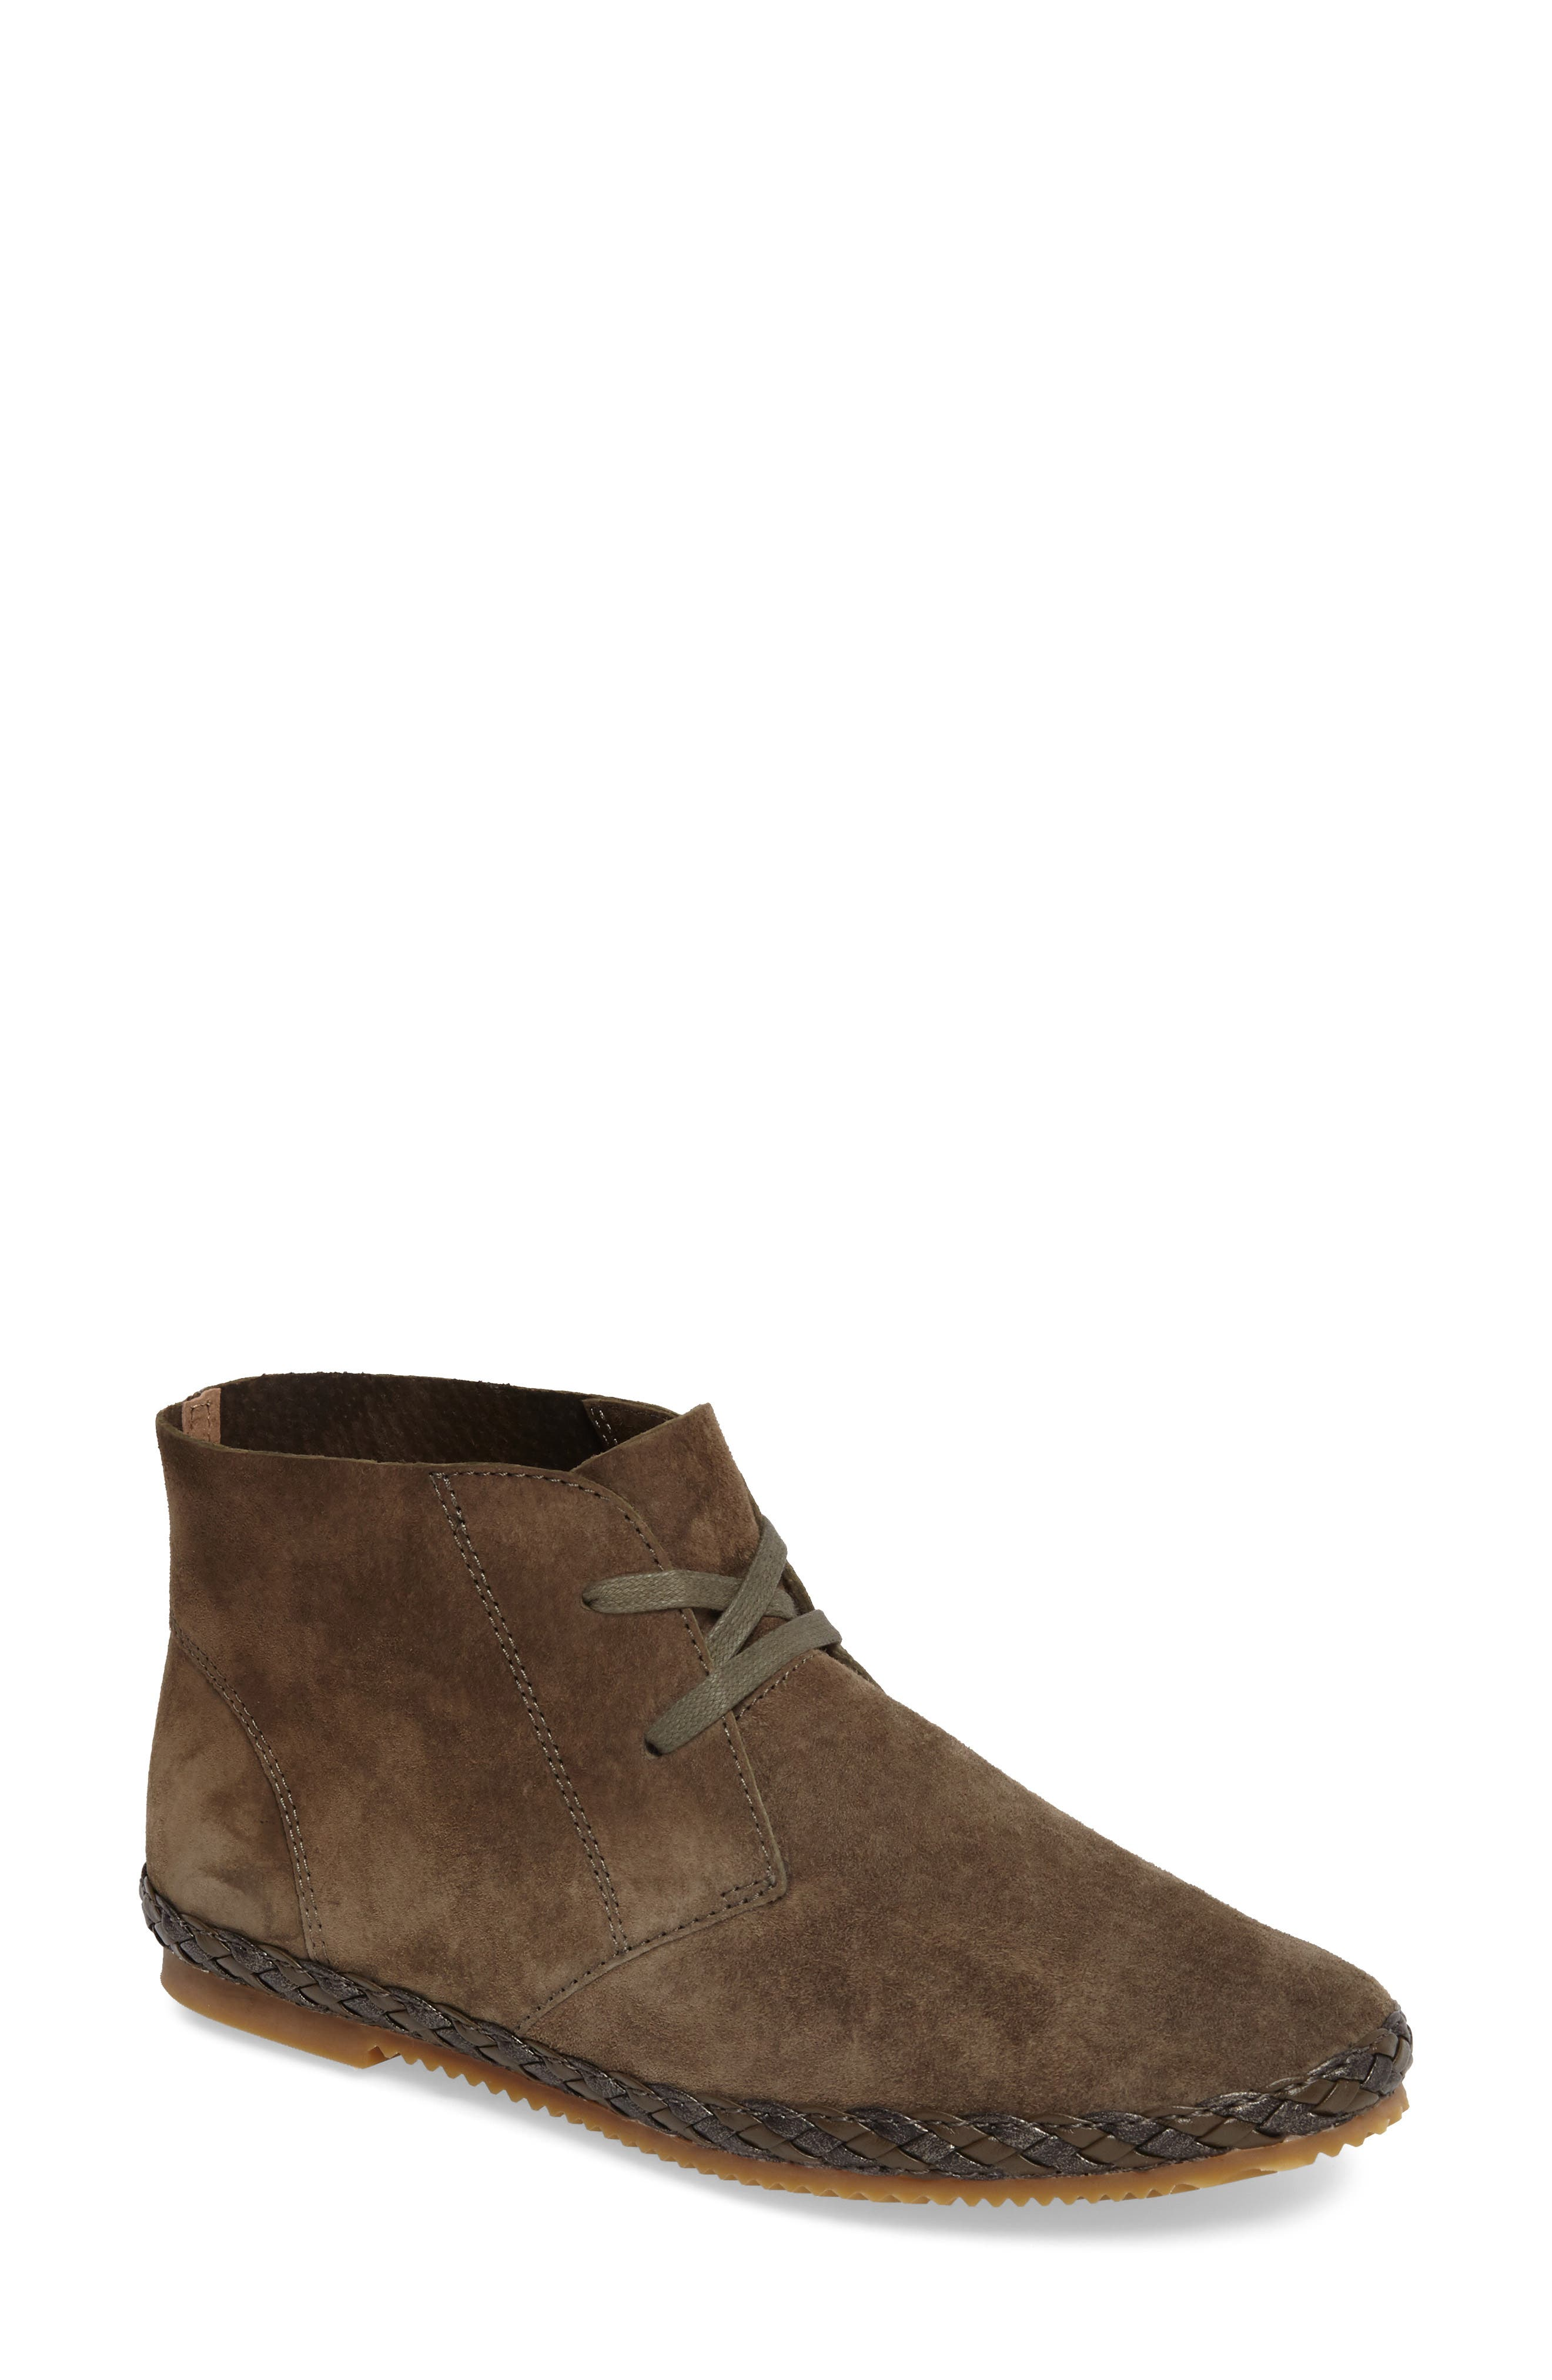 Addison Bootie,                             Main thumbnail 1, color,                             Olive Suede